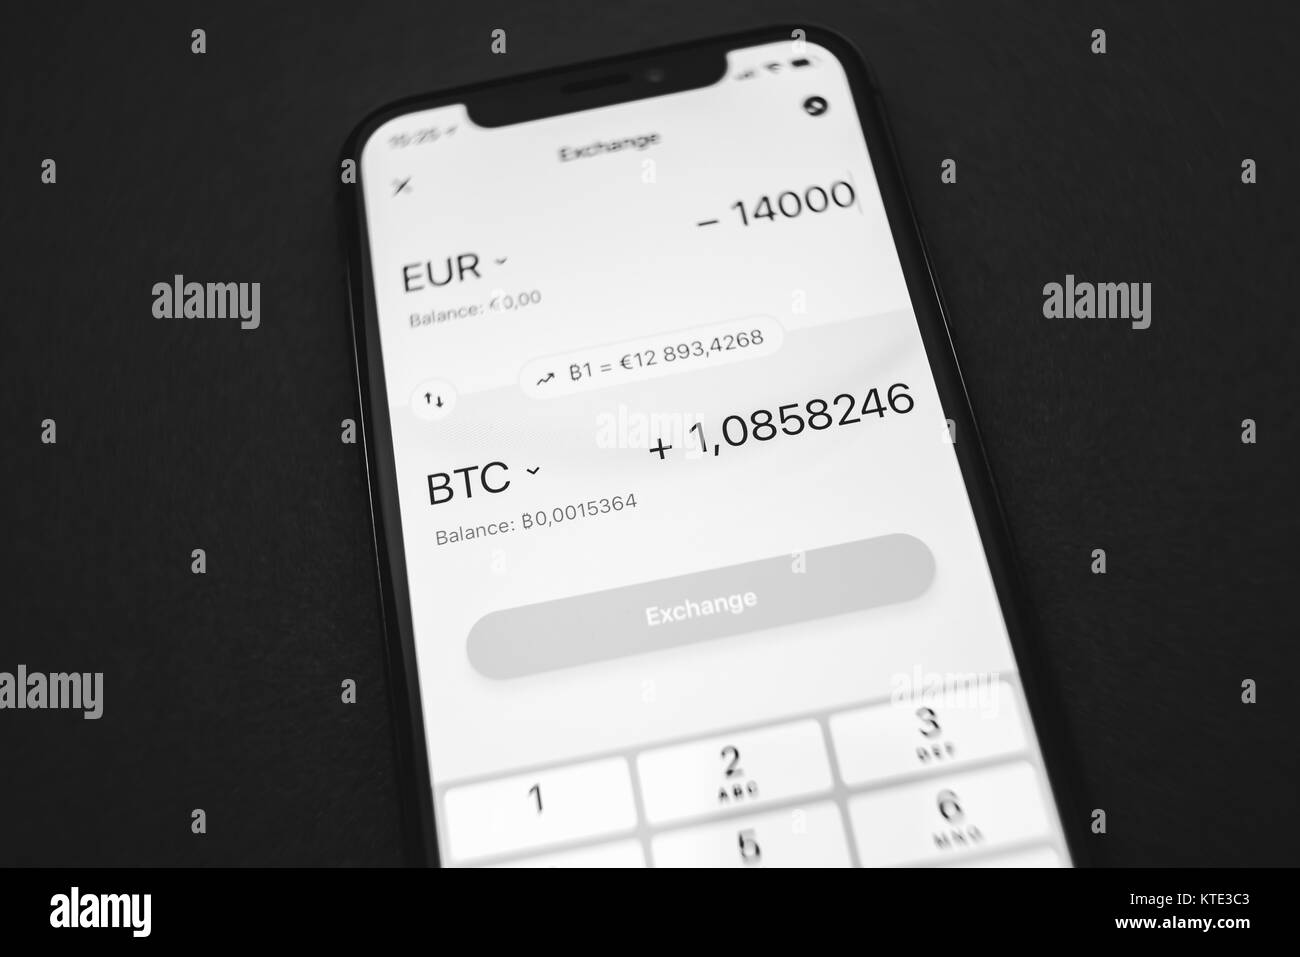 Kaunas lithuania december 23 2017 exchange rate of bitcoin kaunas lithuania december 23 2017 exchange rate of bitcoin view of revolut app on iphone x screen crypto currencies concept ccuart Choice Image